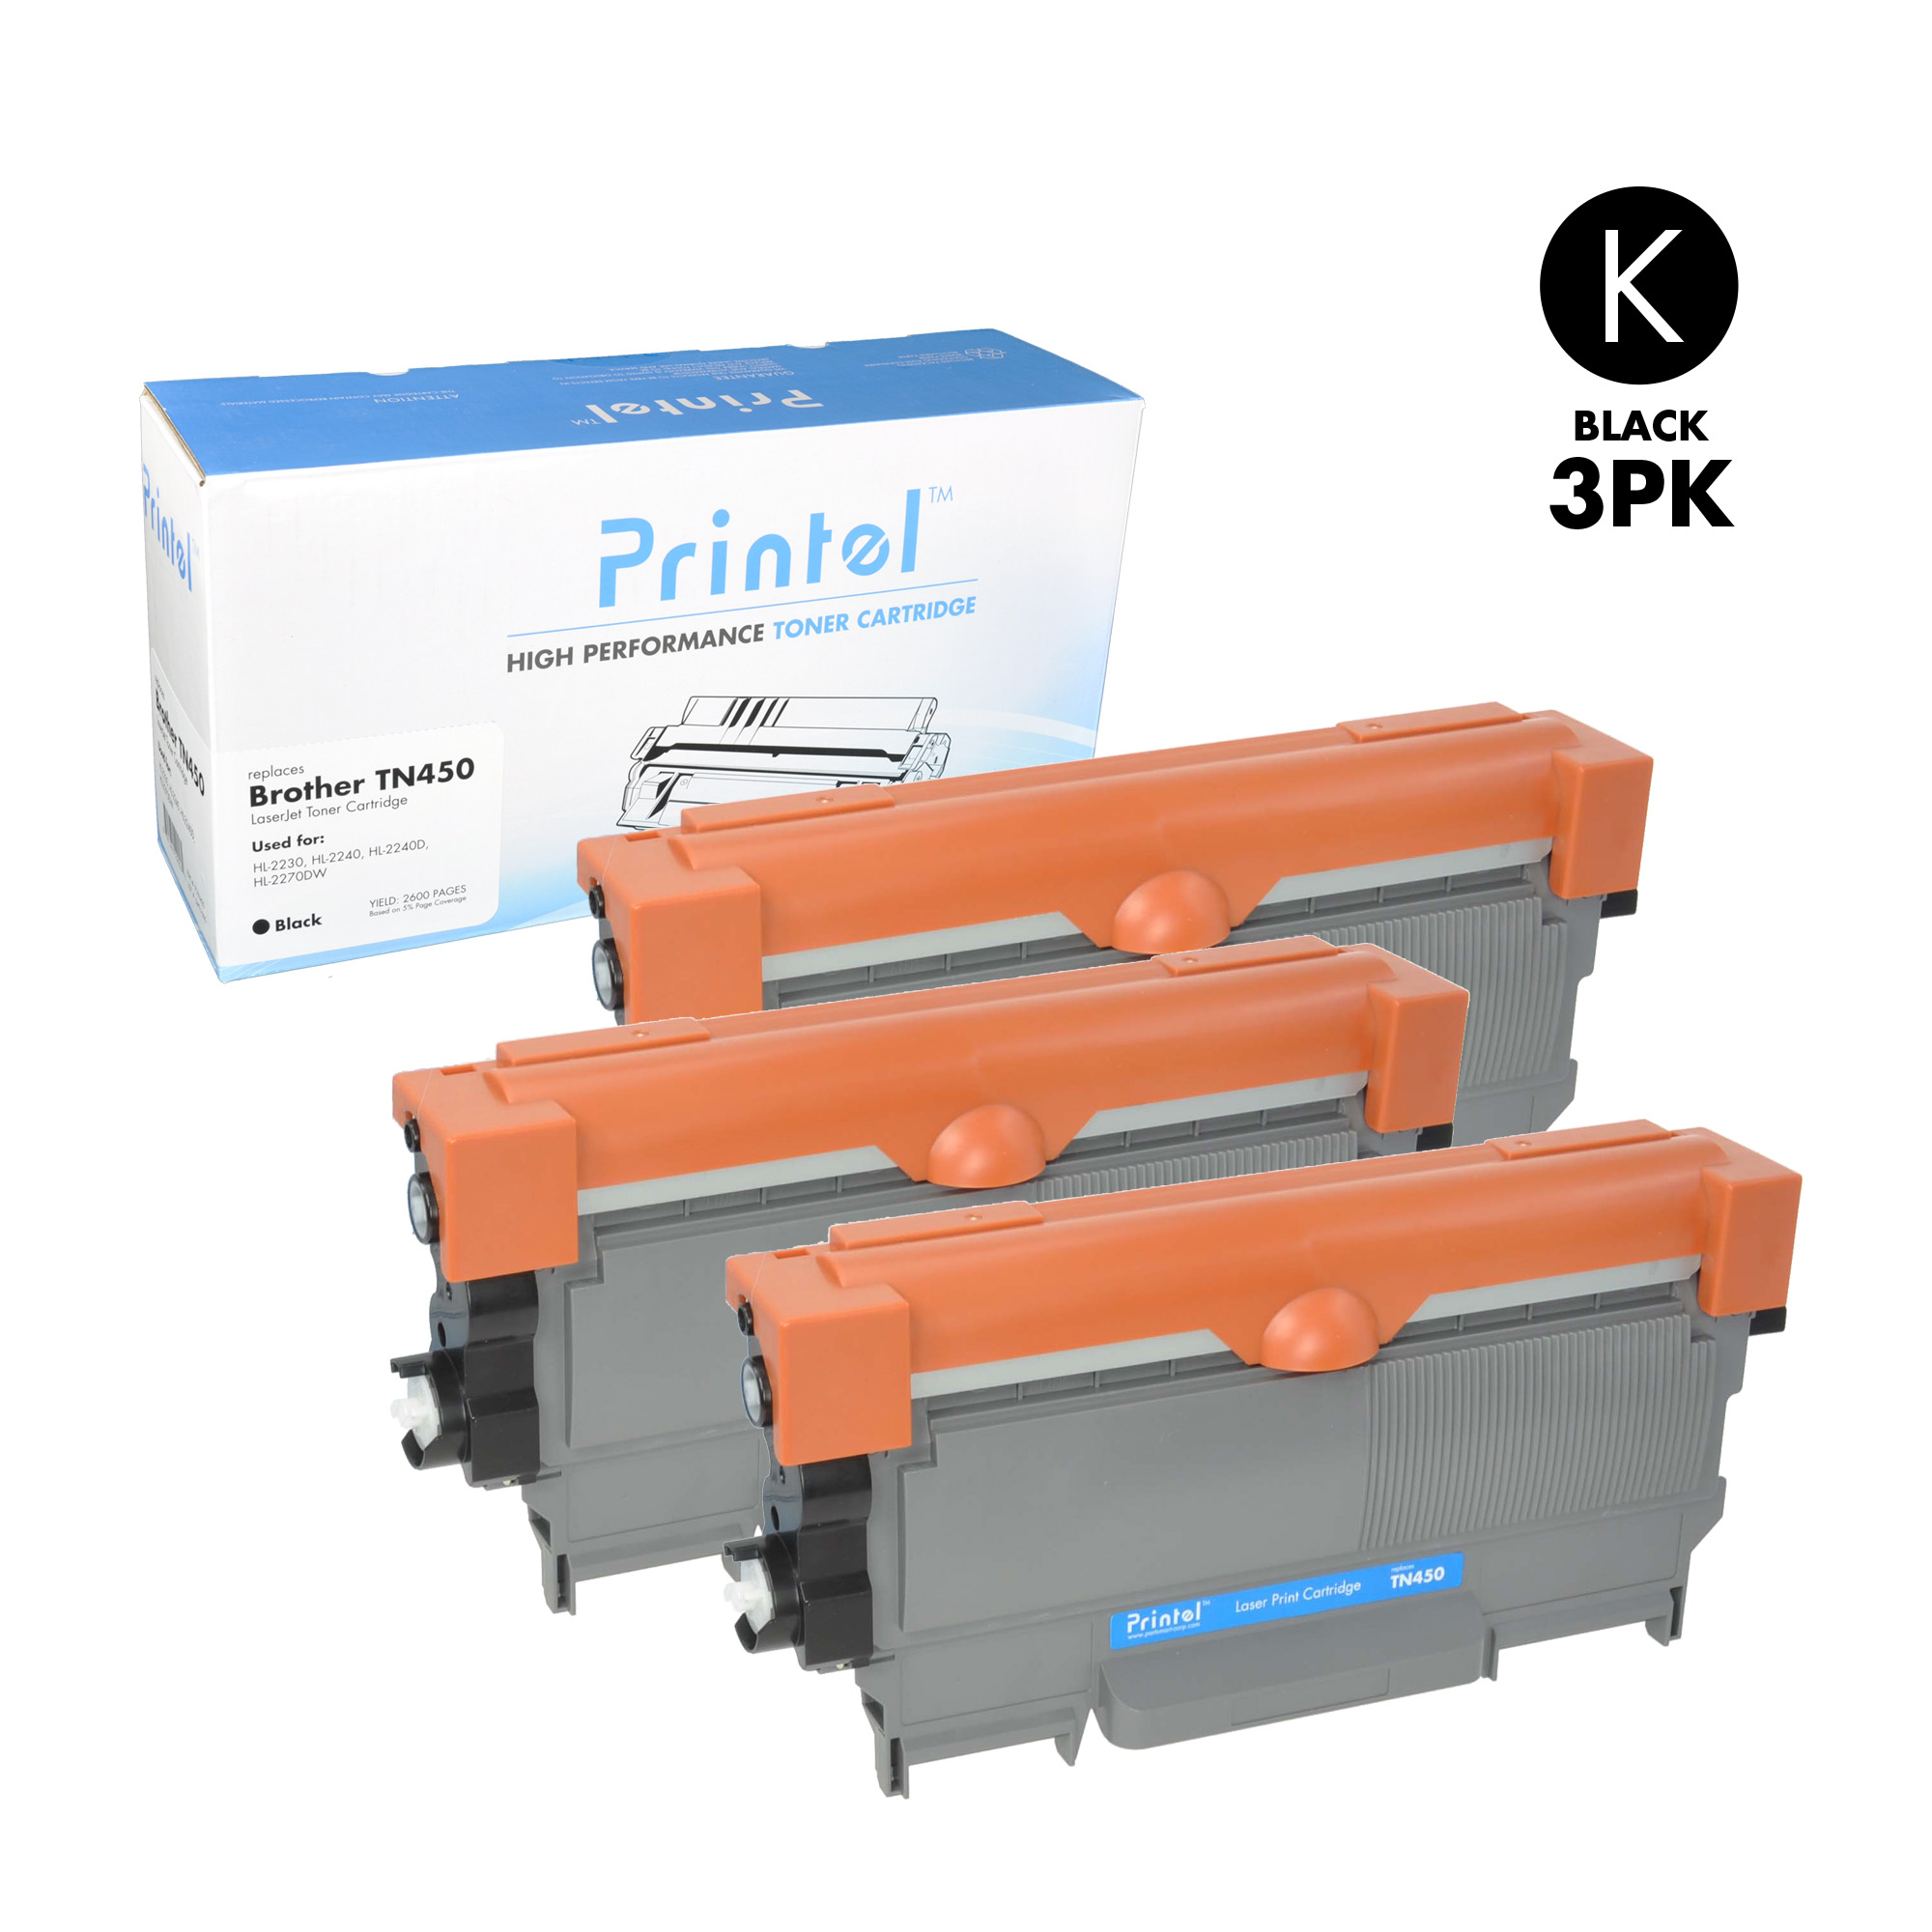 Brother TN450 3 Pack Toner Cartridge used with Brother DCP-7060, Brother DCP-7065, Brother HL-2220, HL-2240